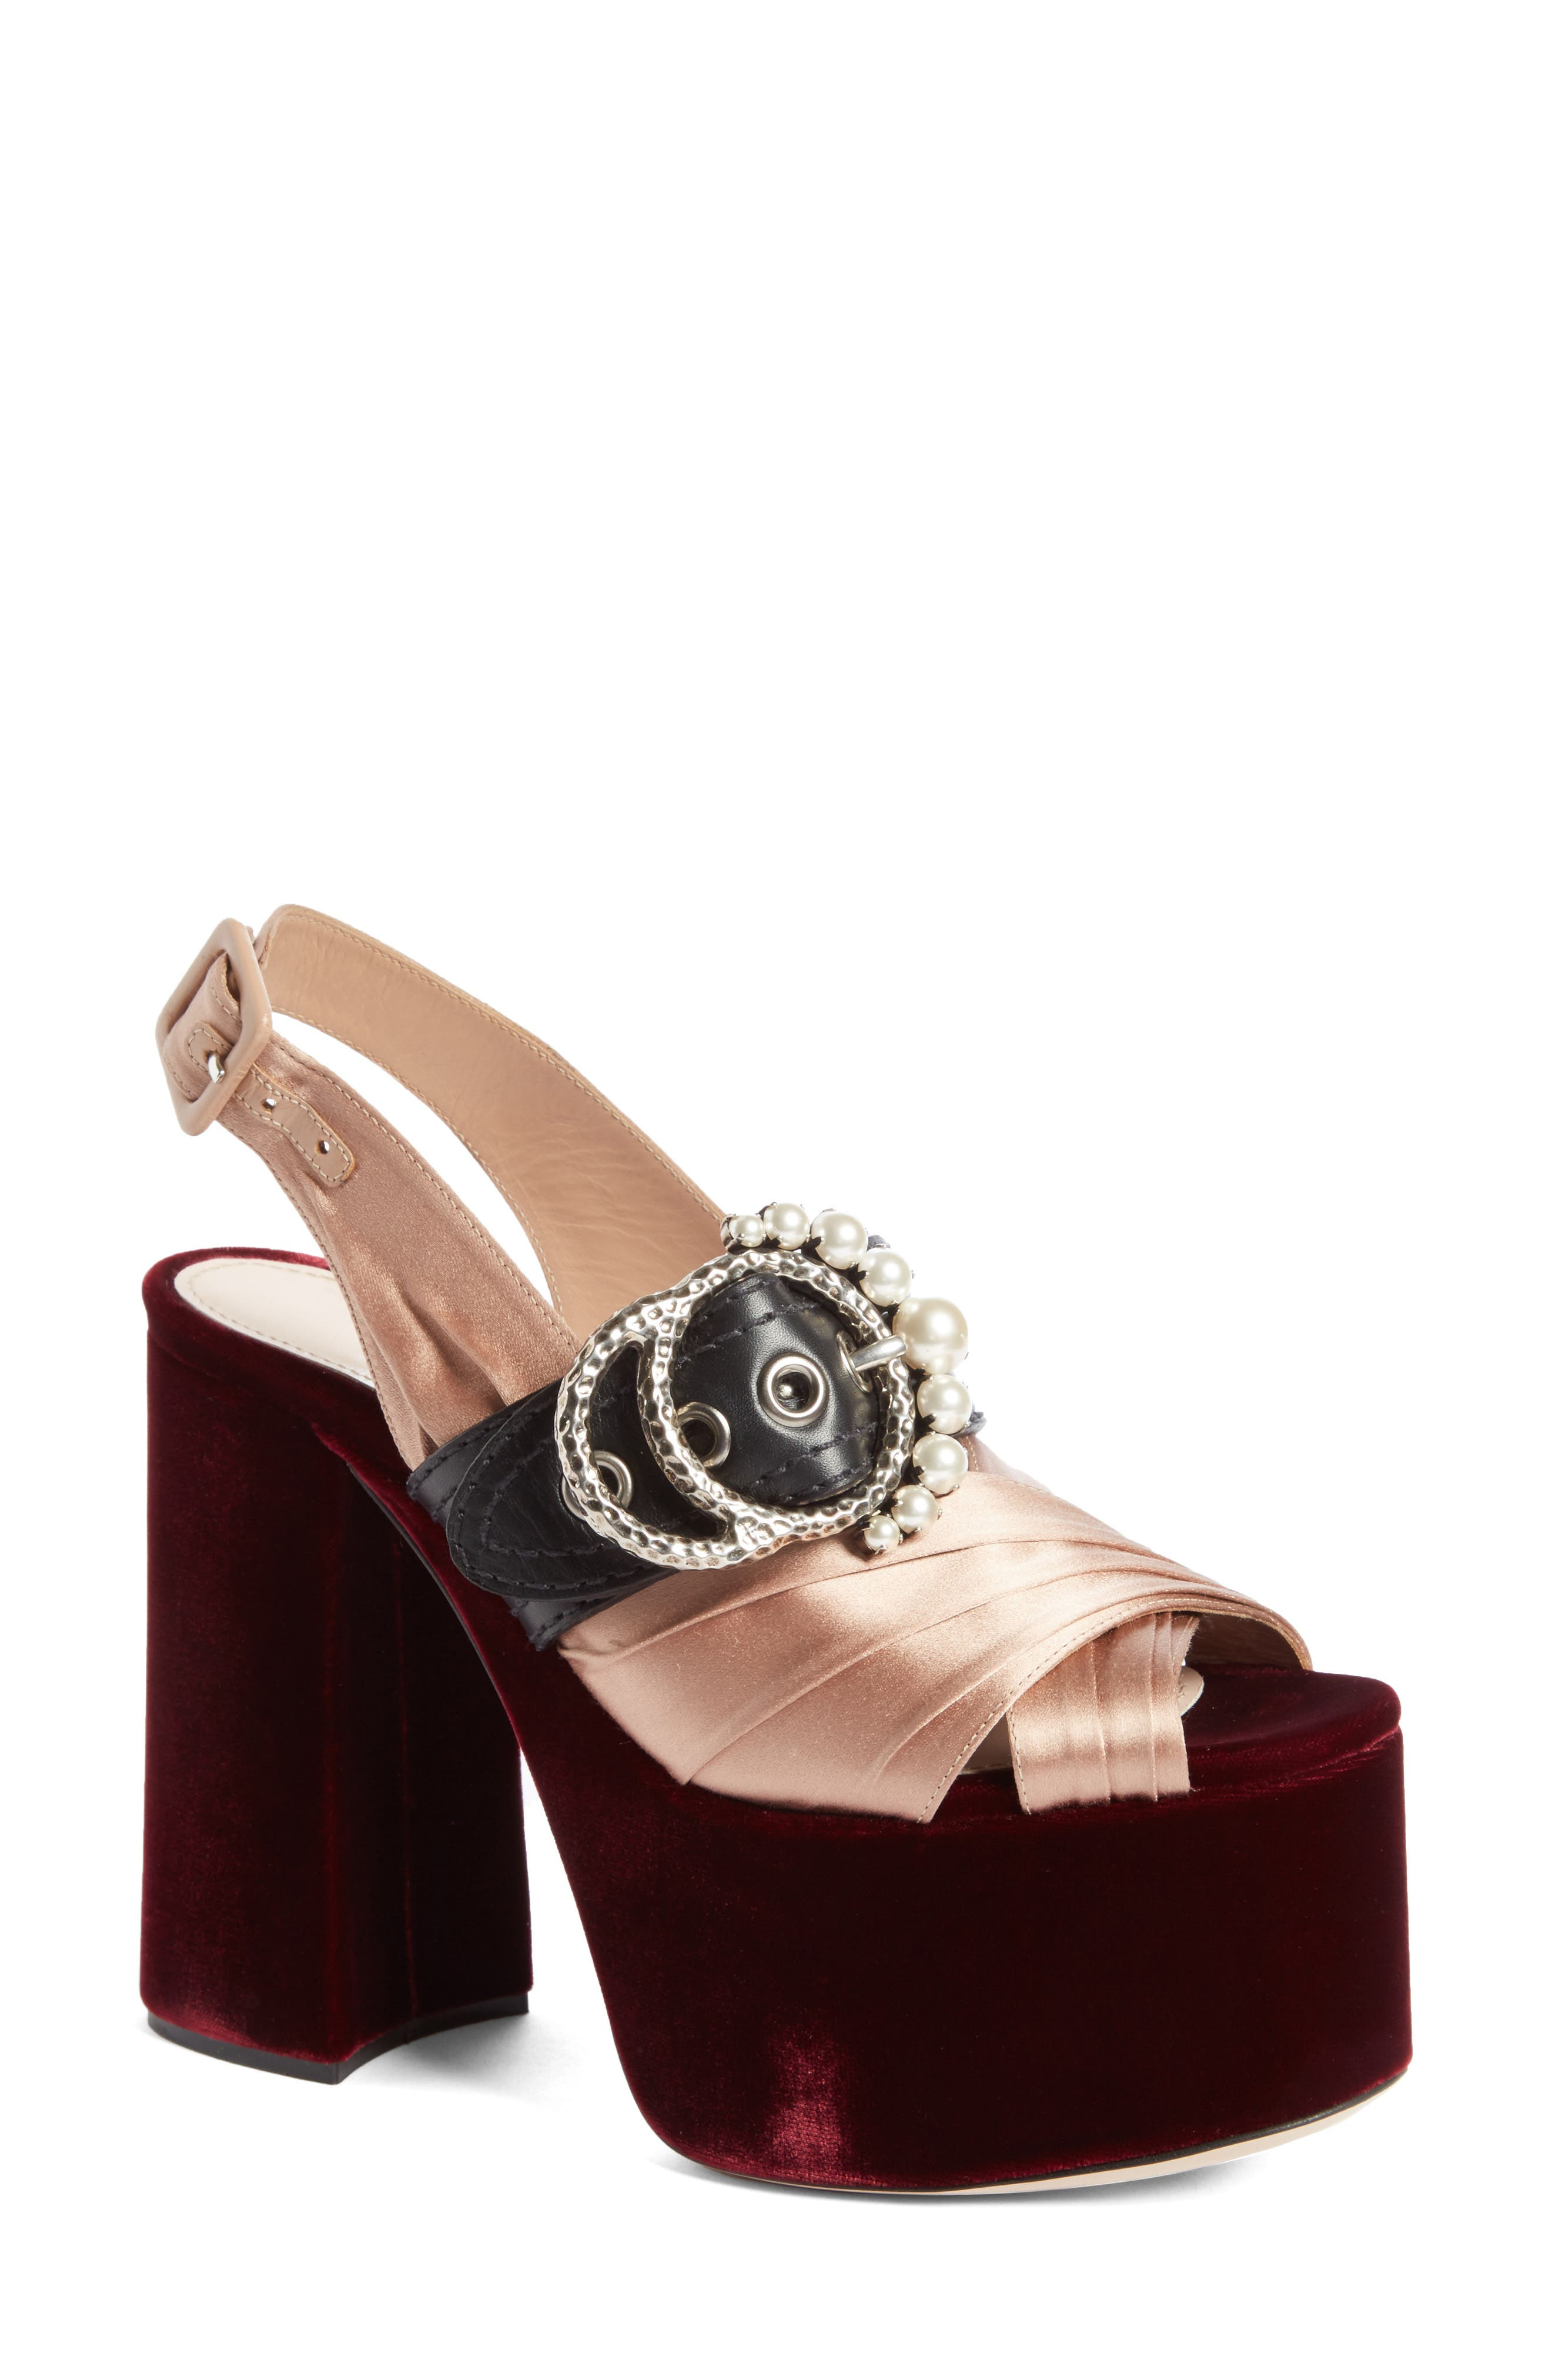 Alternate Image 1 Selected - Miu Miu Imitation Pearl Slingback Platform Sandal (Women)